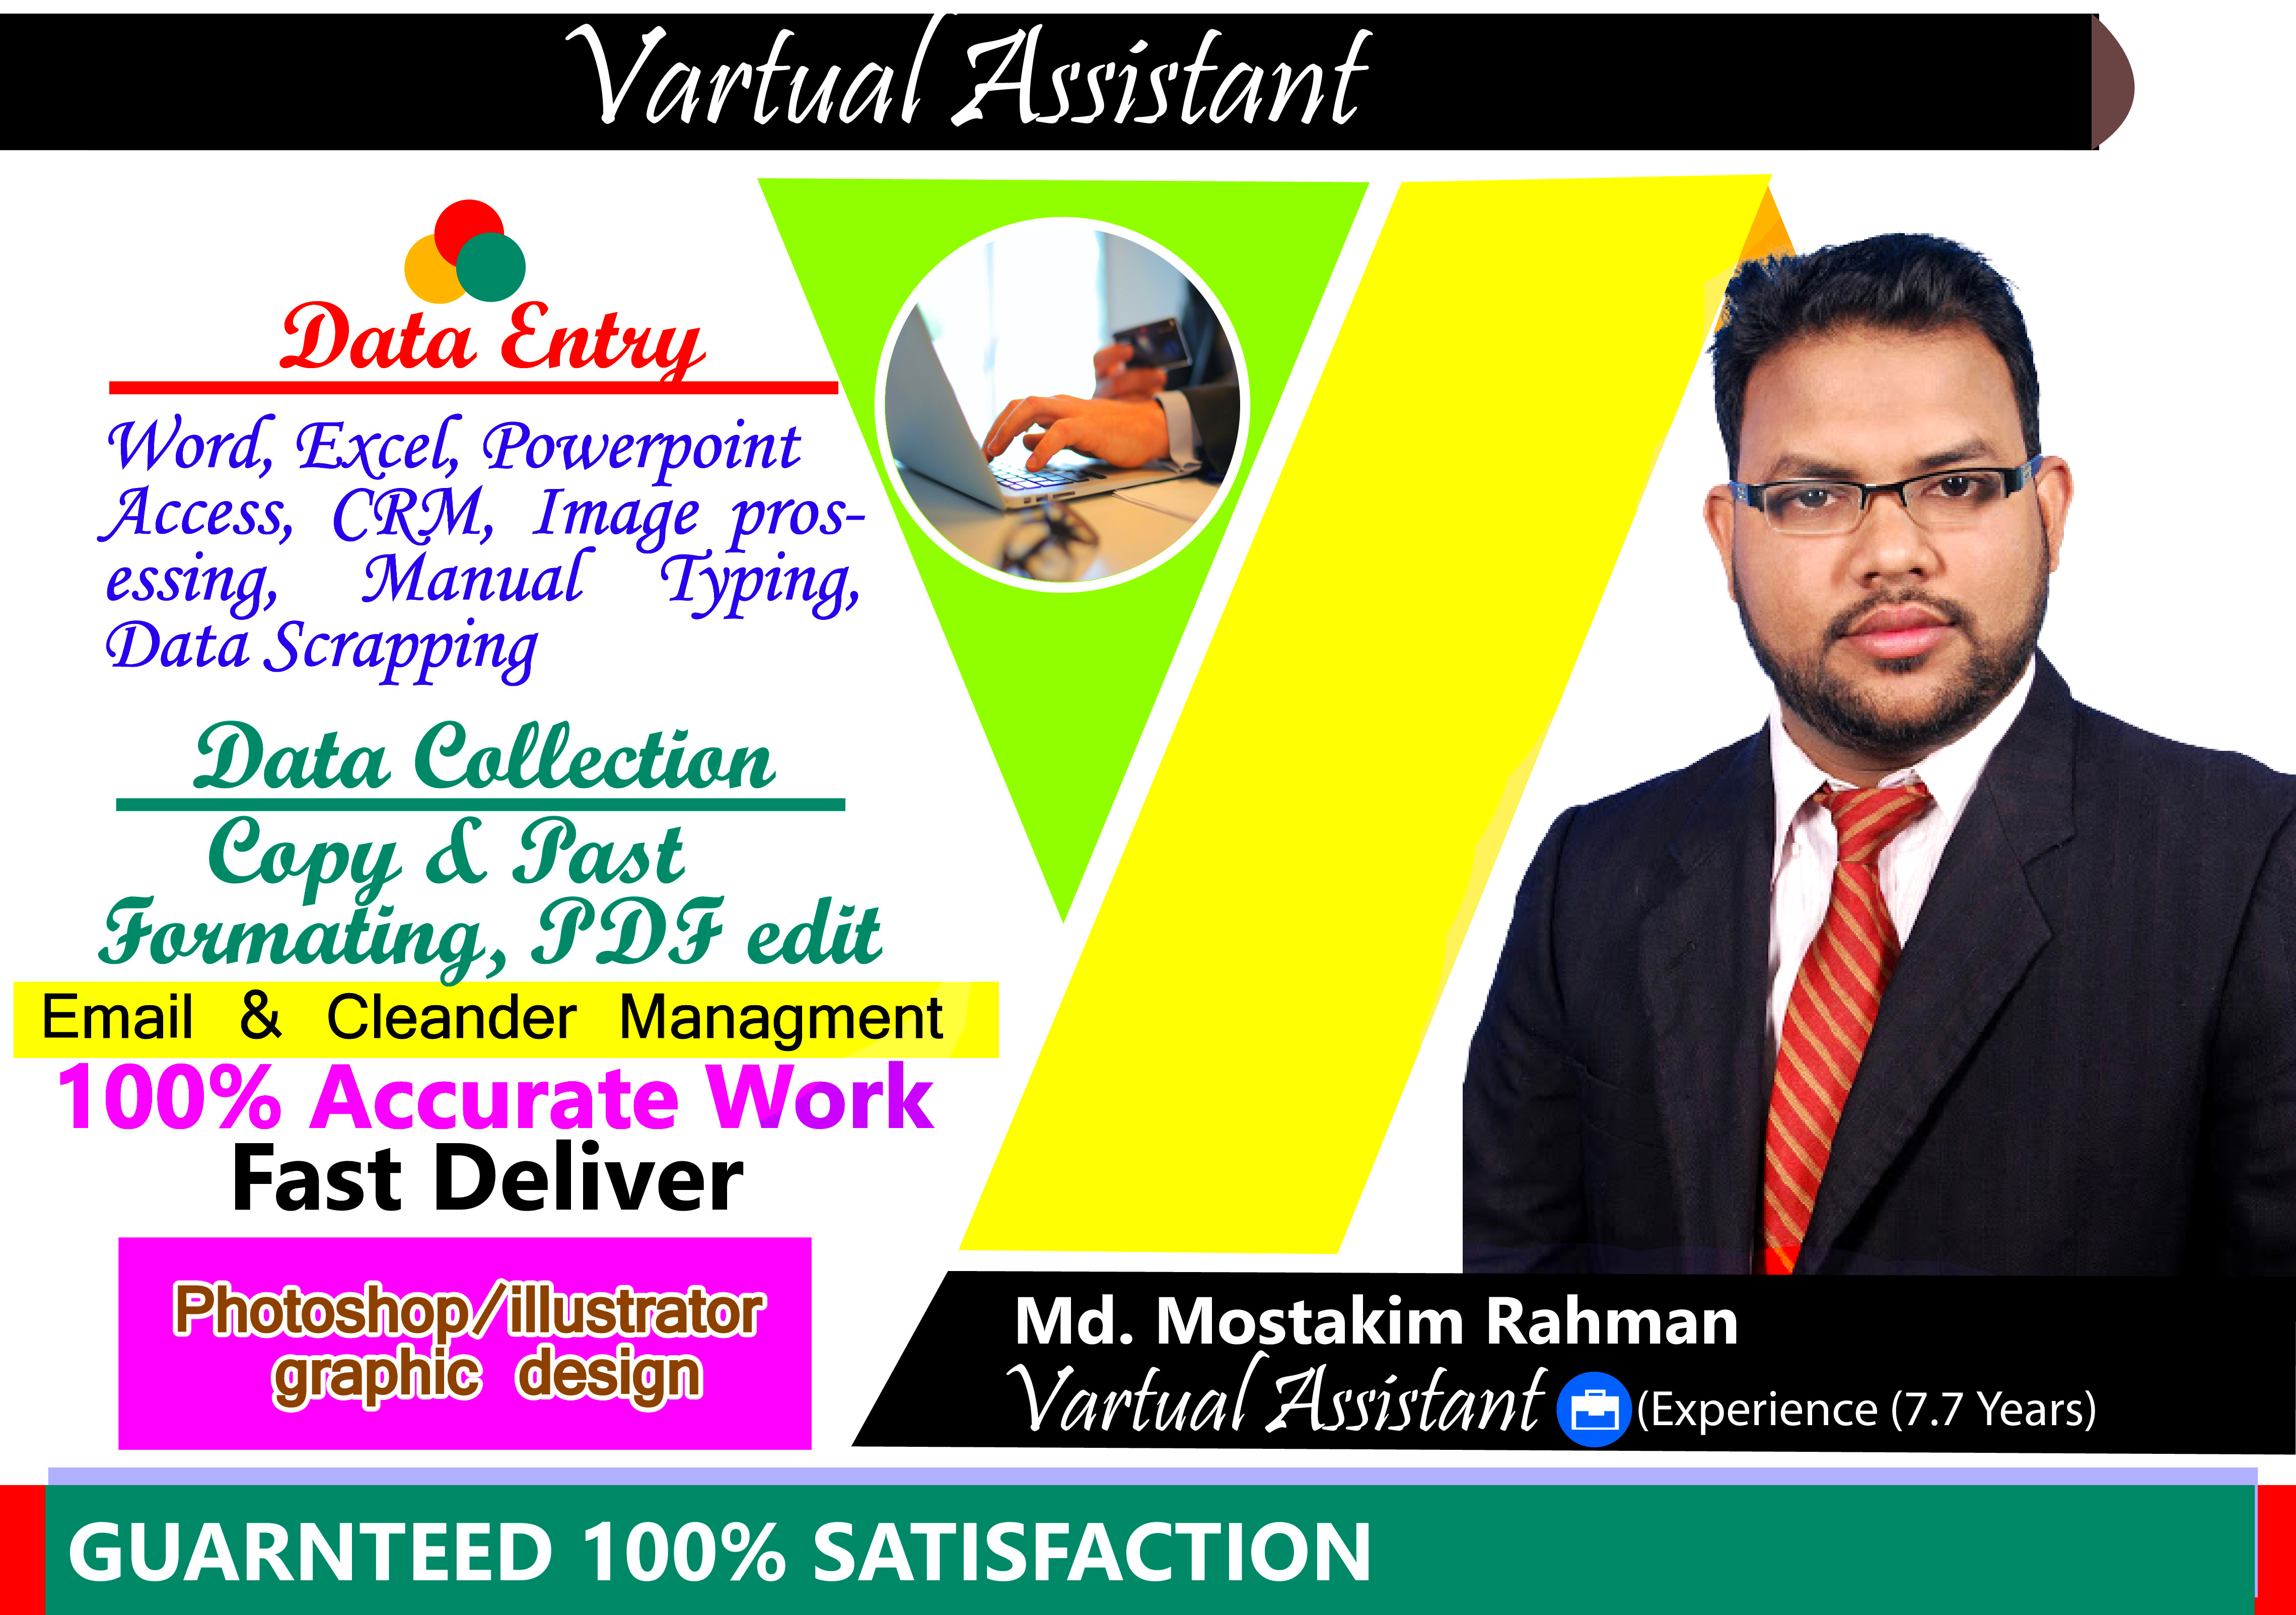 I am Expert in Virtual Assistant.